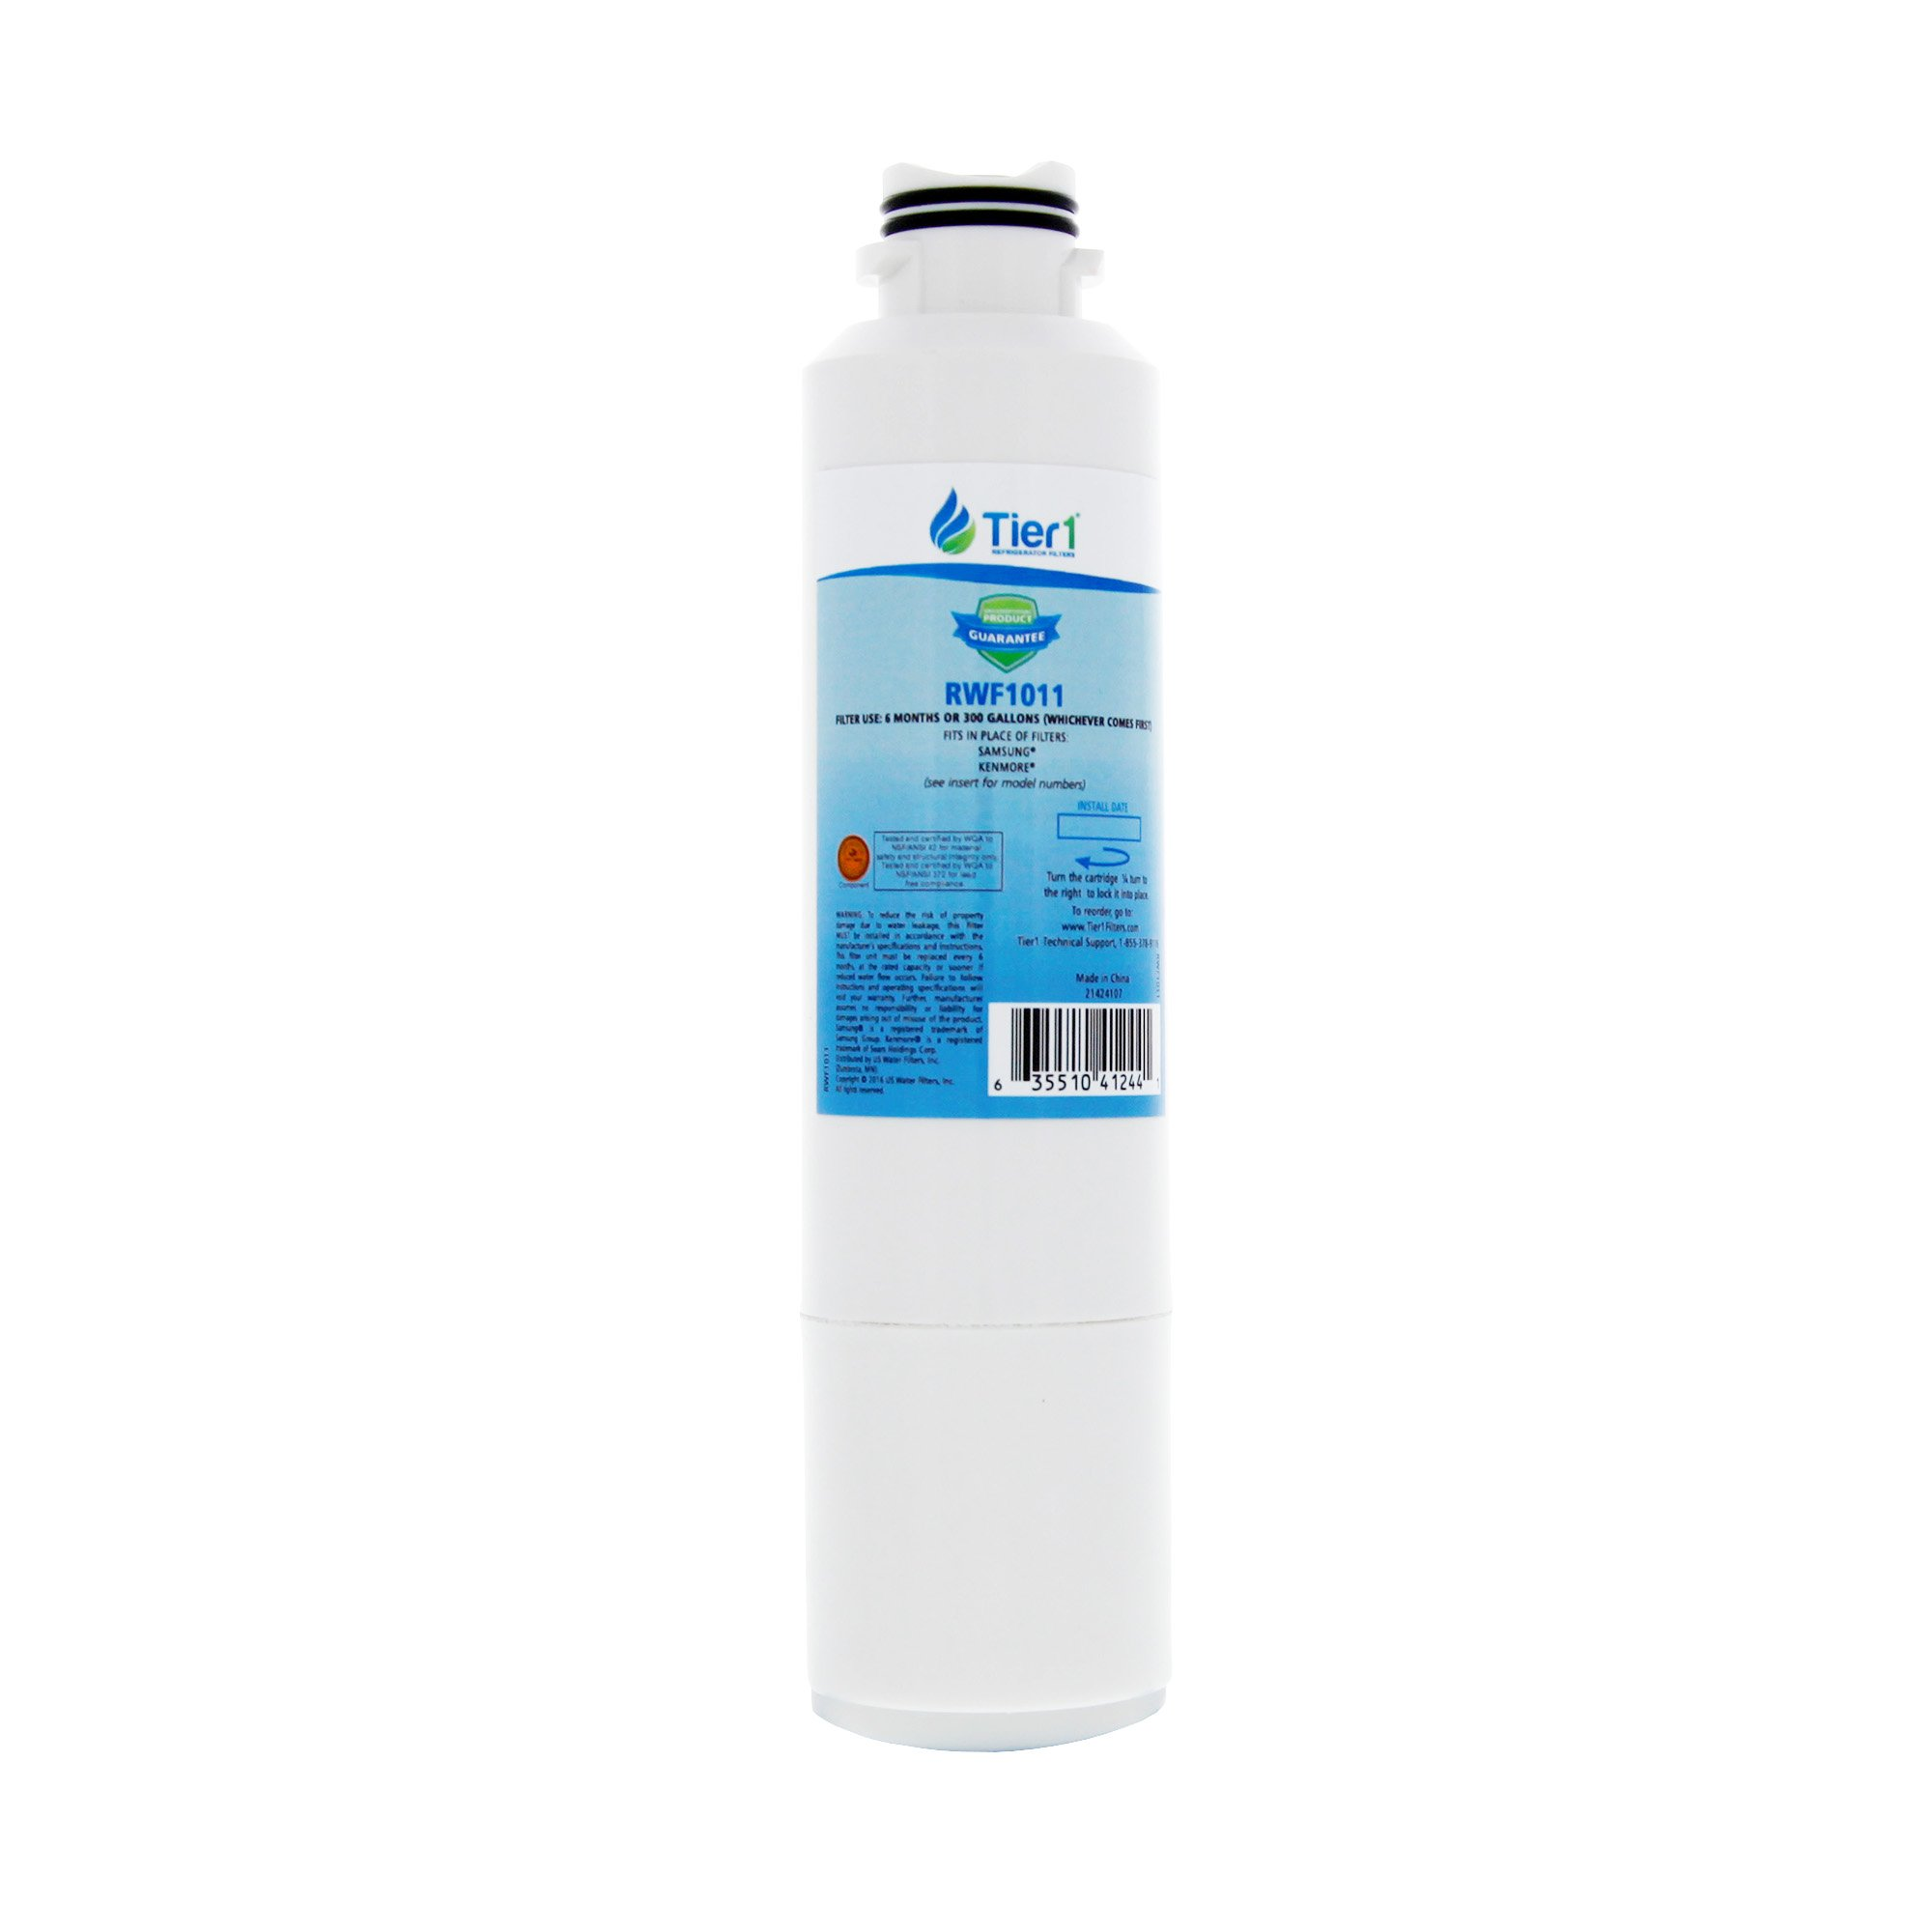 Tier1 Replacement Samsung DA29-00020B, DA29-00020A, HAFCIN/EXP, HAFCIN, 46-9101, DA97-08006A-B Refrigerator Water Filter